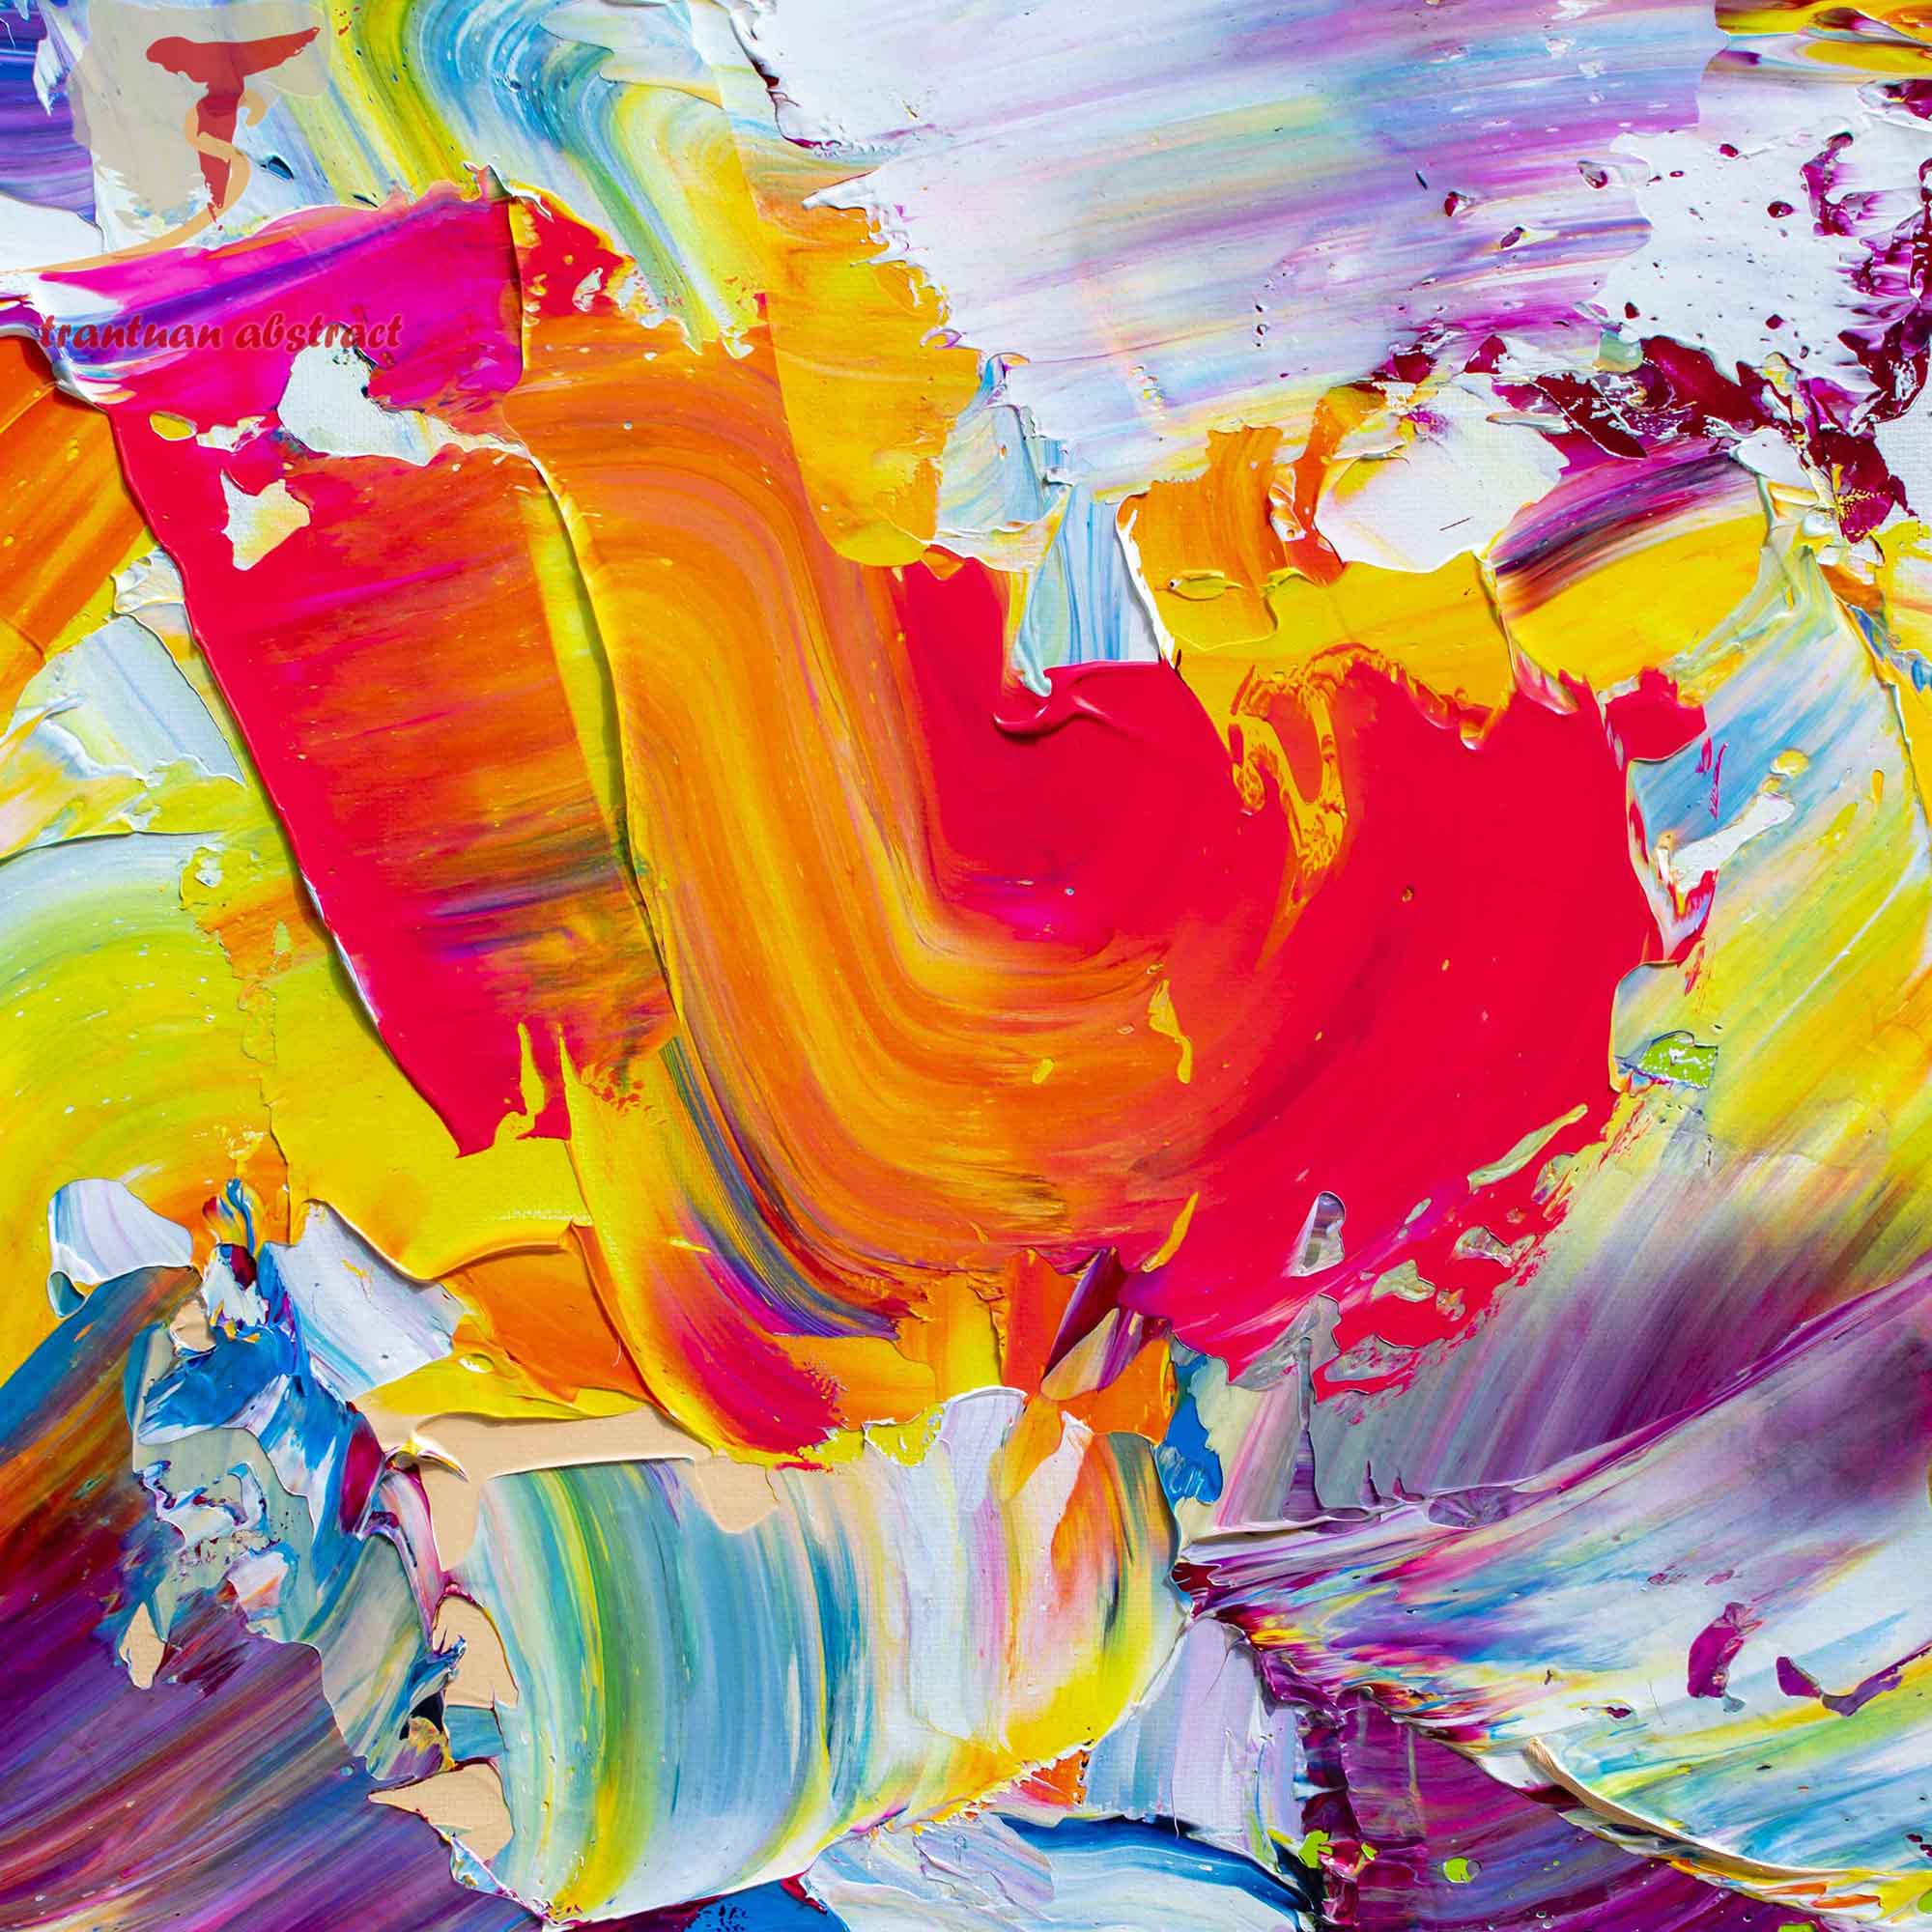 Tran Tuan Abstract Intense Love 2021 135 x 80 x 5 cm Acrylic on Canvas Painting Detail s (2)